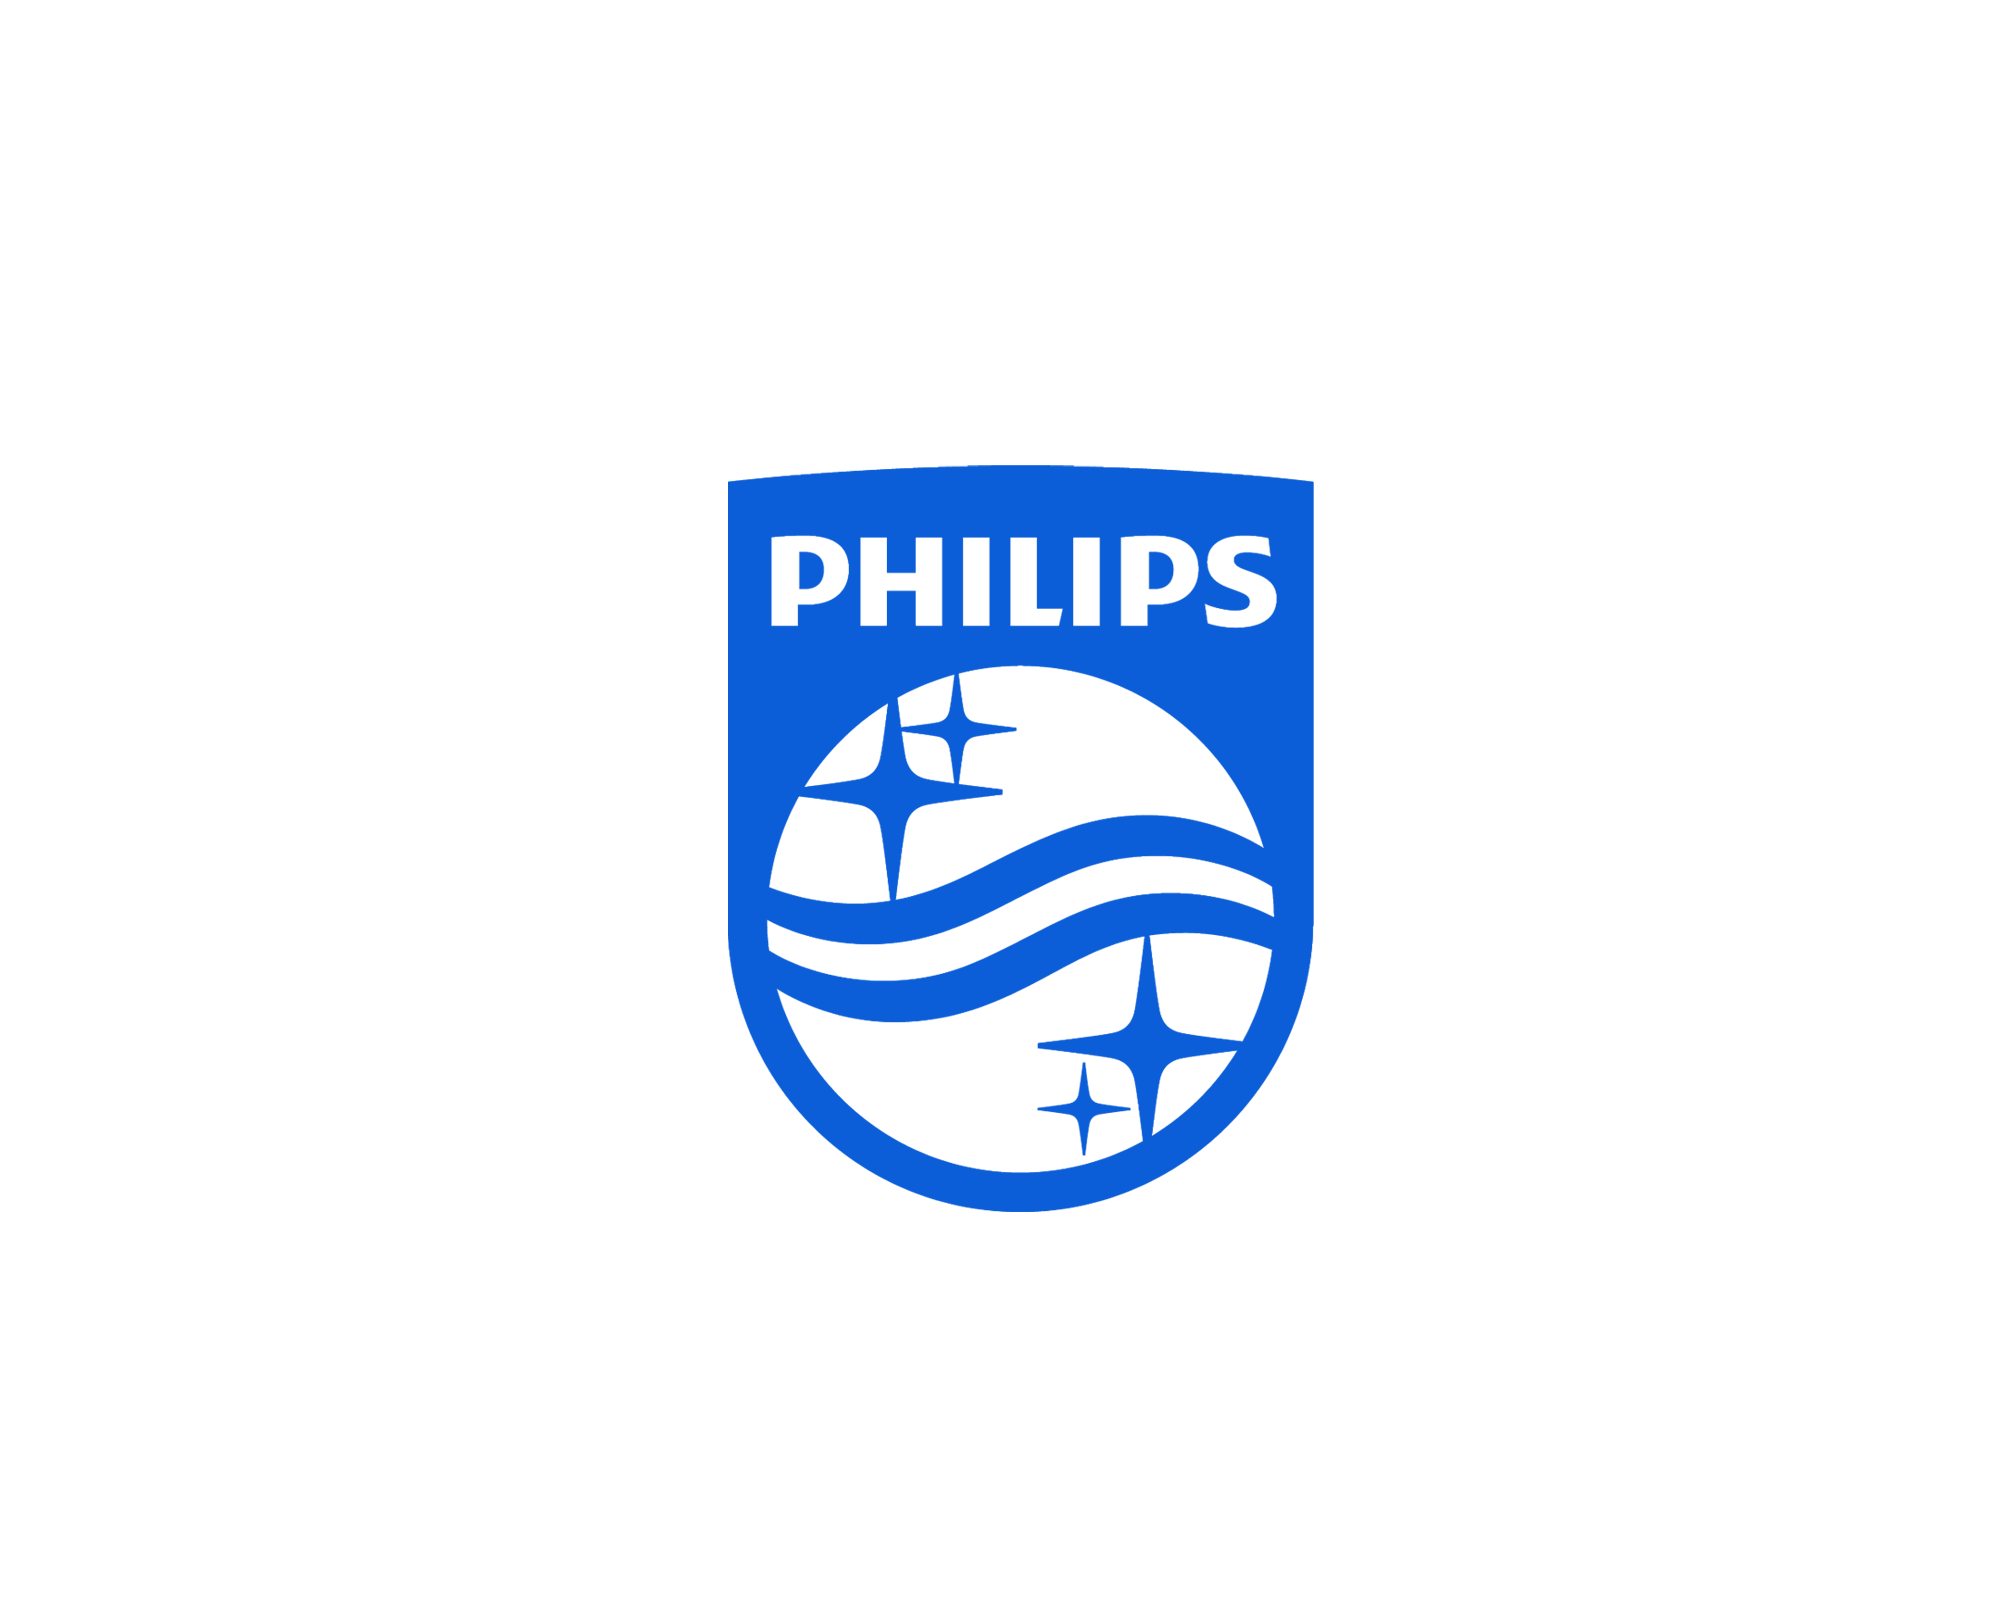 philips logo logok